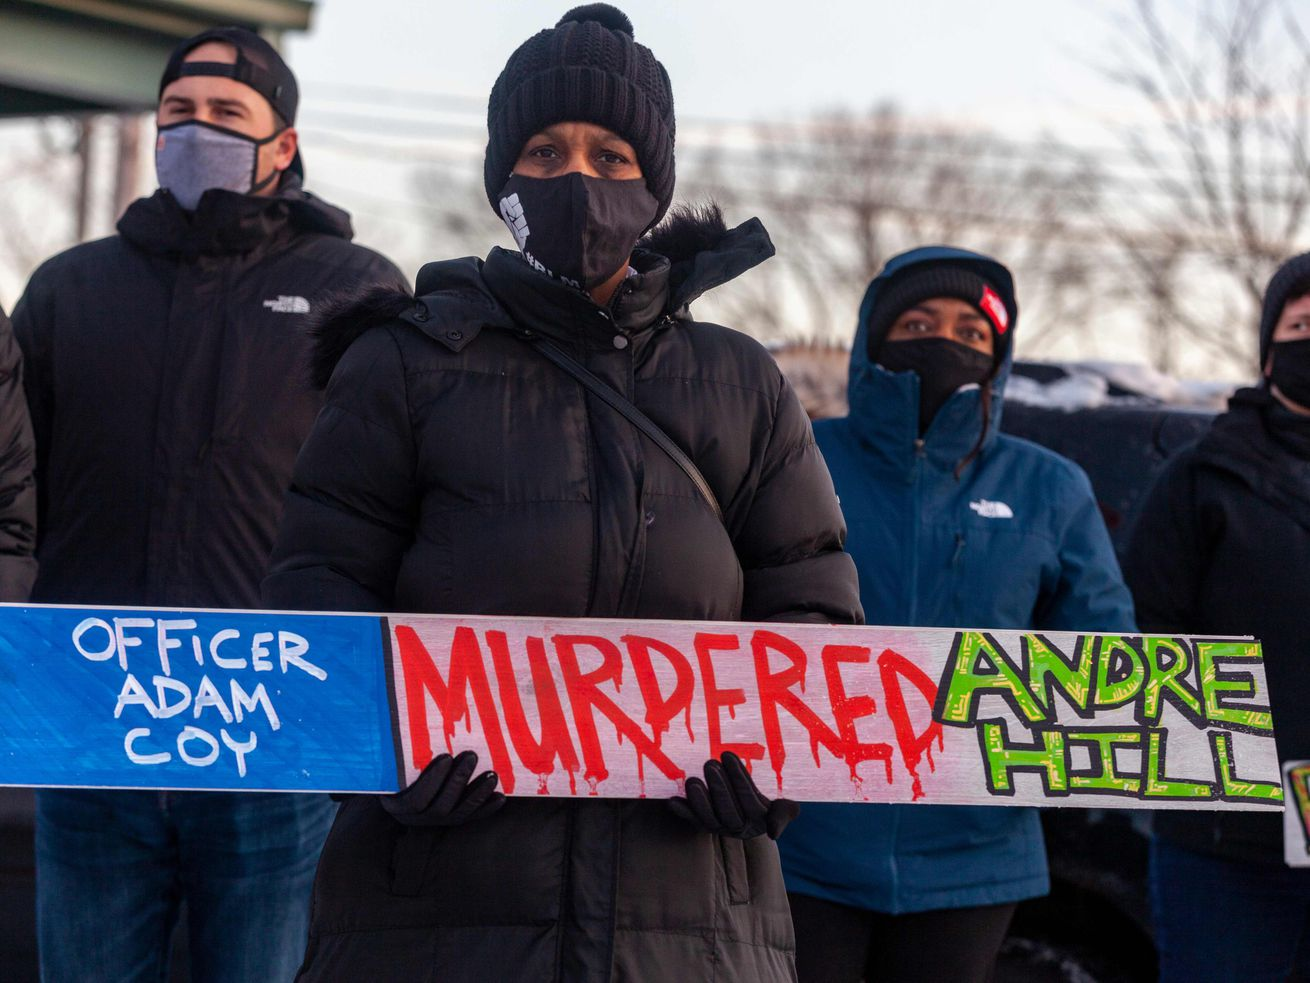 A demonstrator holds a sign condemning Officer Adam Coy at a press conference and candlelight vigil for Andre Hill in Columbus, Ohio on December 26, 2020.